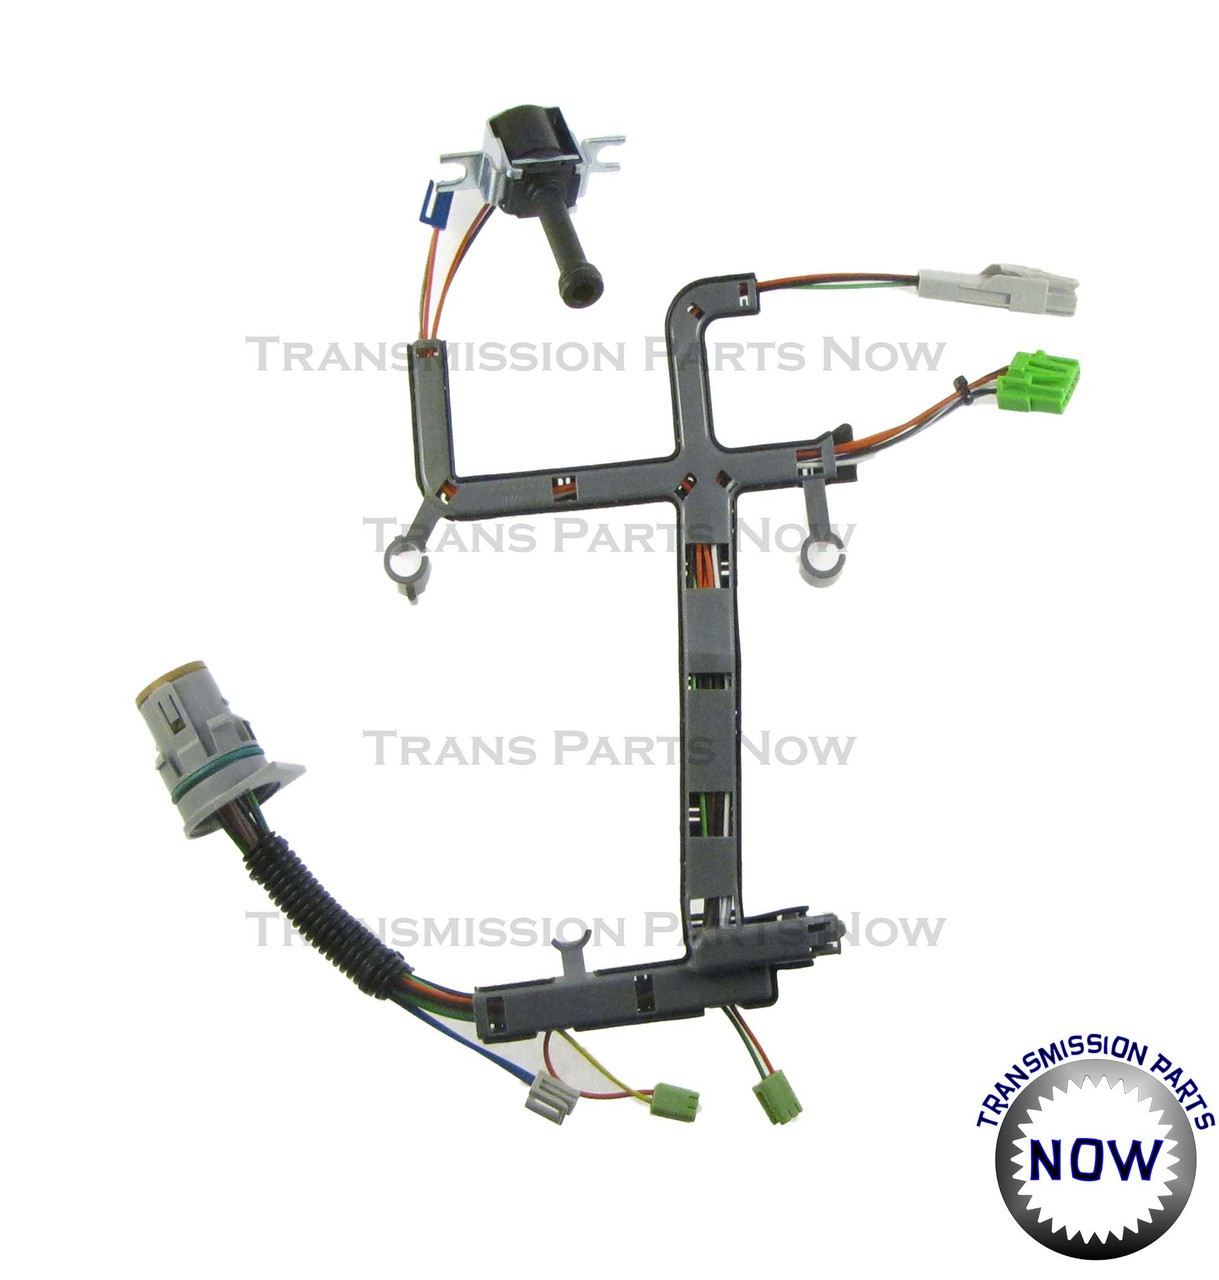 hight resolution of rostra 350 0152 4l65e 4l70e 2009 2012 wiring harness wire loom 2009 2012 internal transmission wiring